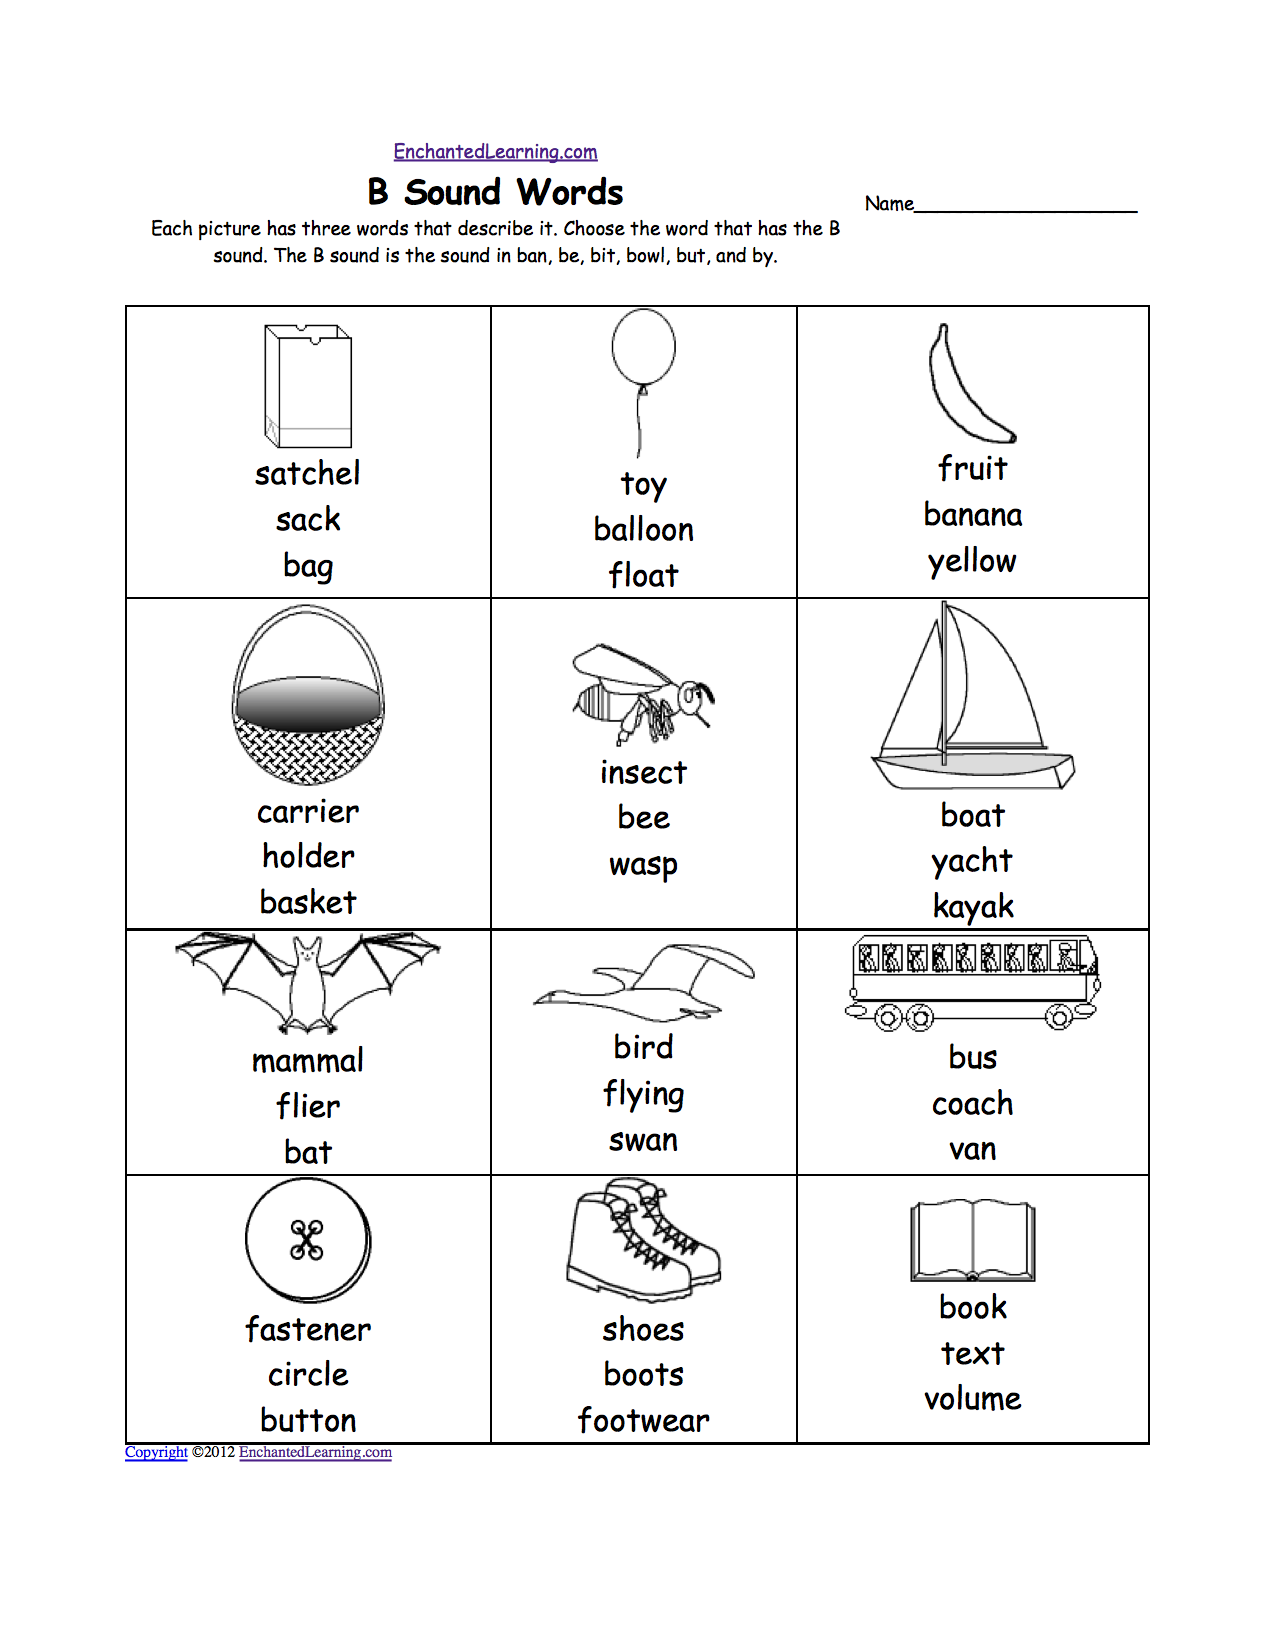 Aldiablosus  Personable Phonics Worksheets Multiple Choice Worksheets To Print  With Great Quotbquot Sound Phonics Worksheet Multiple Choice Each Picture Has Three Words That Describe It Choose The Word That Has A Quotbquot Sound The Quotbquot Sound Is The Sound  With Comely Kids Maze Worksheets Also Area And Perimeter Triangle Worksheets In Addition Mes Worksheets And Super Teacher Worksheets Grade  As Well As Math Problem Solving Worksheet Additionally Middle Vowel Sounds Worksheets From Enchantedlearningcom With Aldiablosus  Great Phonics Worksheets Multiple Choice Worksheets To Print  With Comely Quotbquot Sound Phonics Worksheet Multiple Choice Each Picture Has Three Words That Describe It Choose The Word That Has A Quotbquot Sound The Quotbquot Sound Is The Sound  And Personable Kids Maze Worksheets Also Area And Perimeter Triangle Worksheets In Addition Mes Worksheets From Enchantedlearningcom